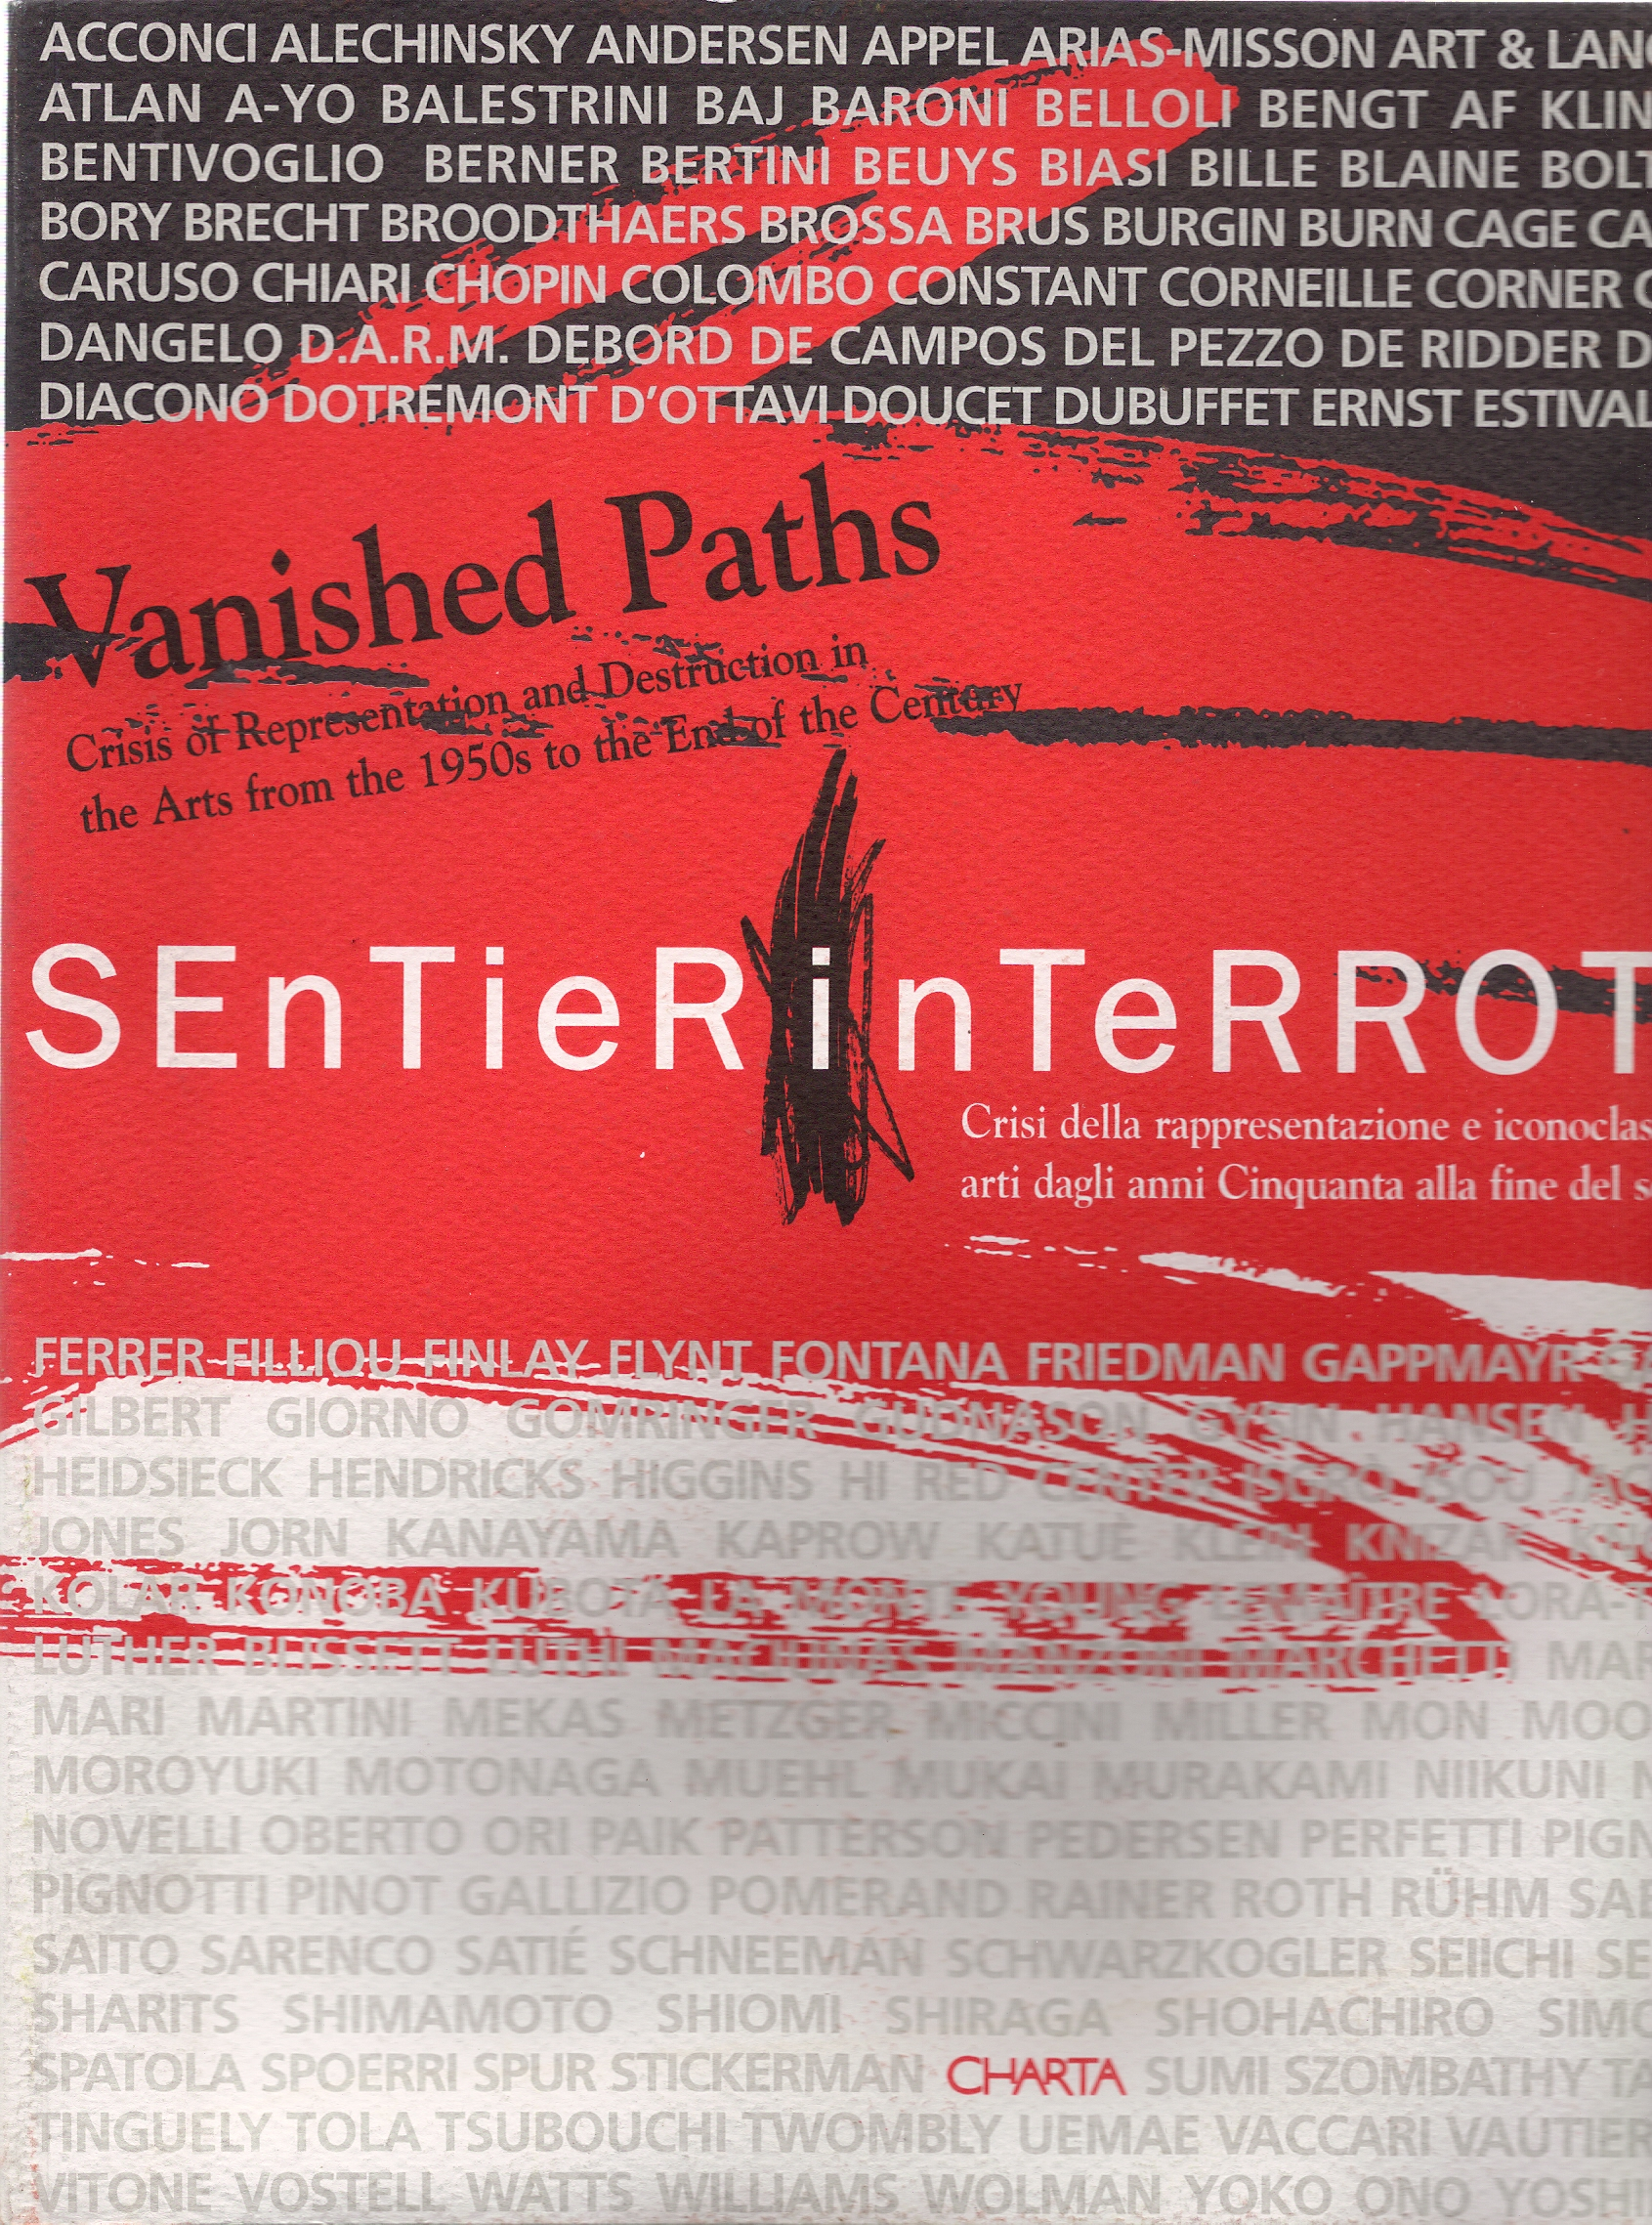 Sentierin Terrotti,  Vanished Paths -  Crisis of Representation and Destruction in the Arts from 1950s to the End of the Century, Charta, 2000